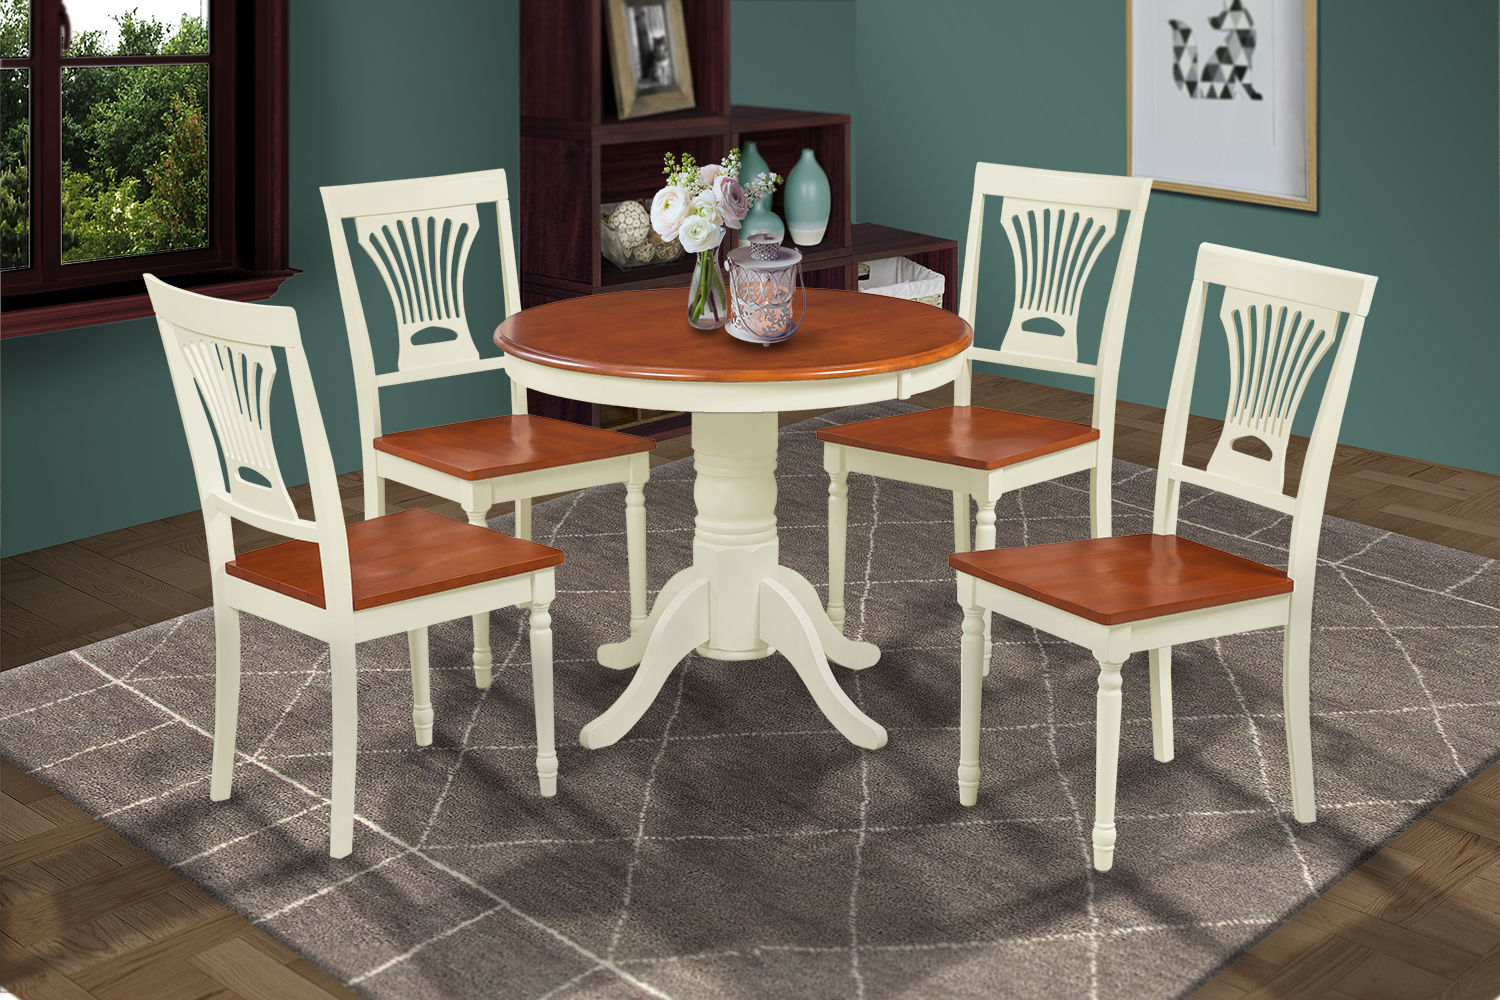 DINETTE DINING TABLE CHAIR SET W/. WOODEN SEAT CHAIRS IN BUTTERMILk & CHERRY